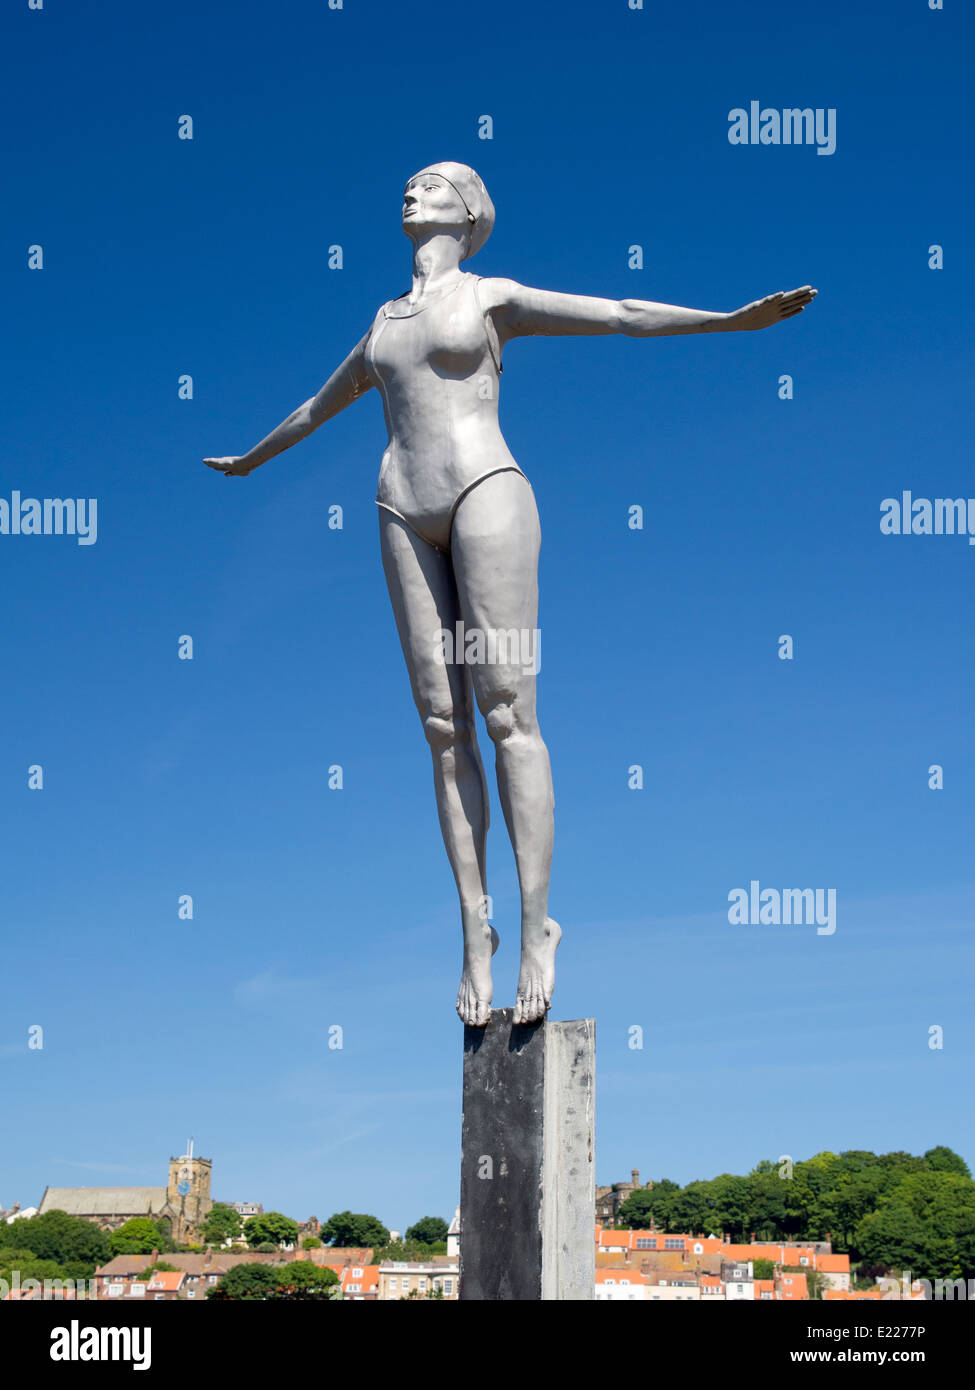 Diving Belle Statue Scarborough Yorkshire UK - Stock Image